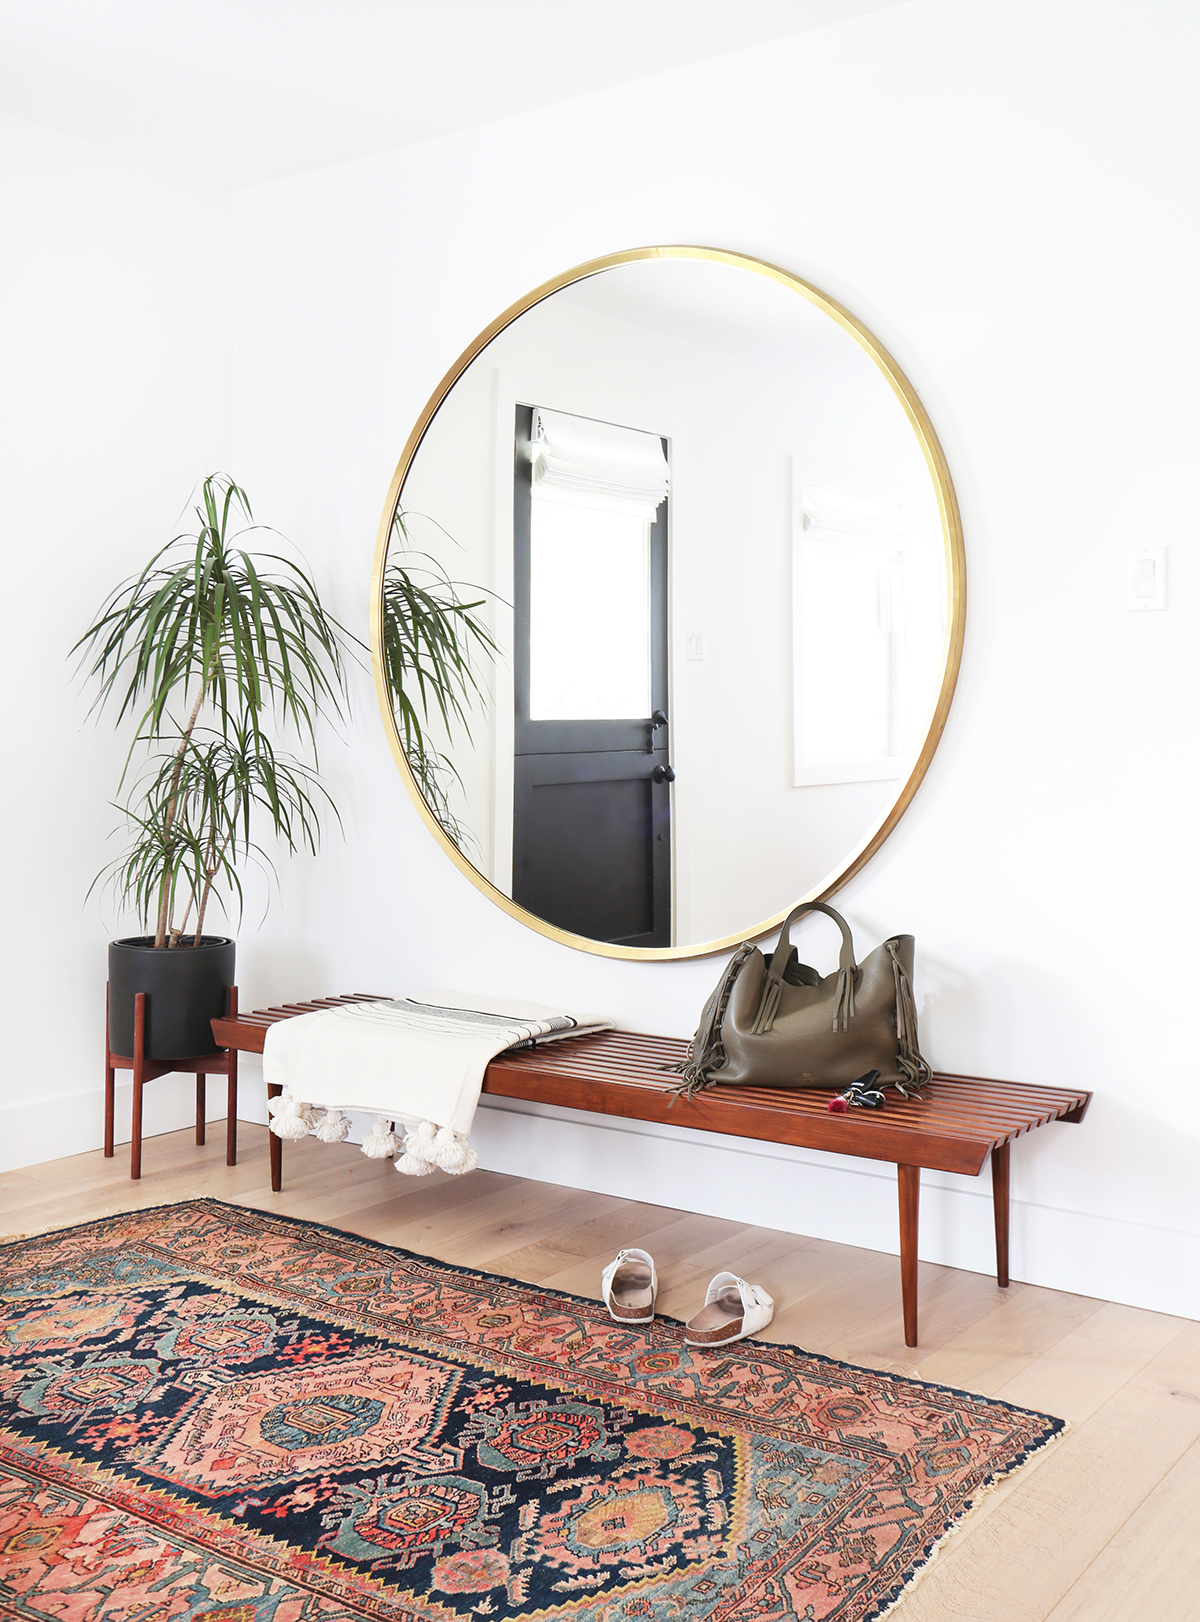 Use Round Mirrors To Complete Any Room in Your Home | Kathy Kuo Blog ...